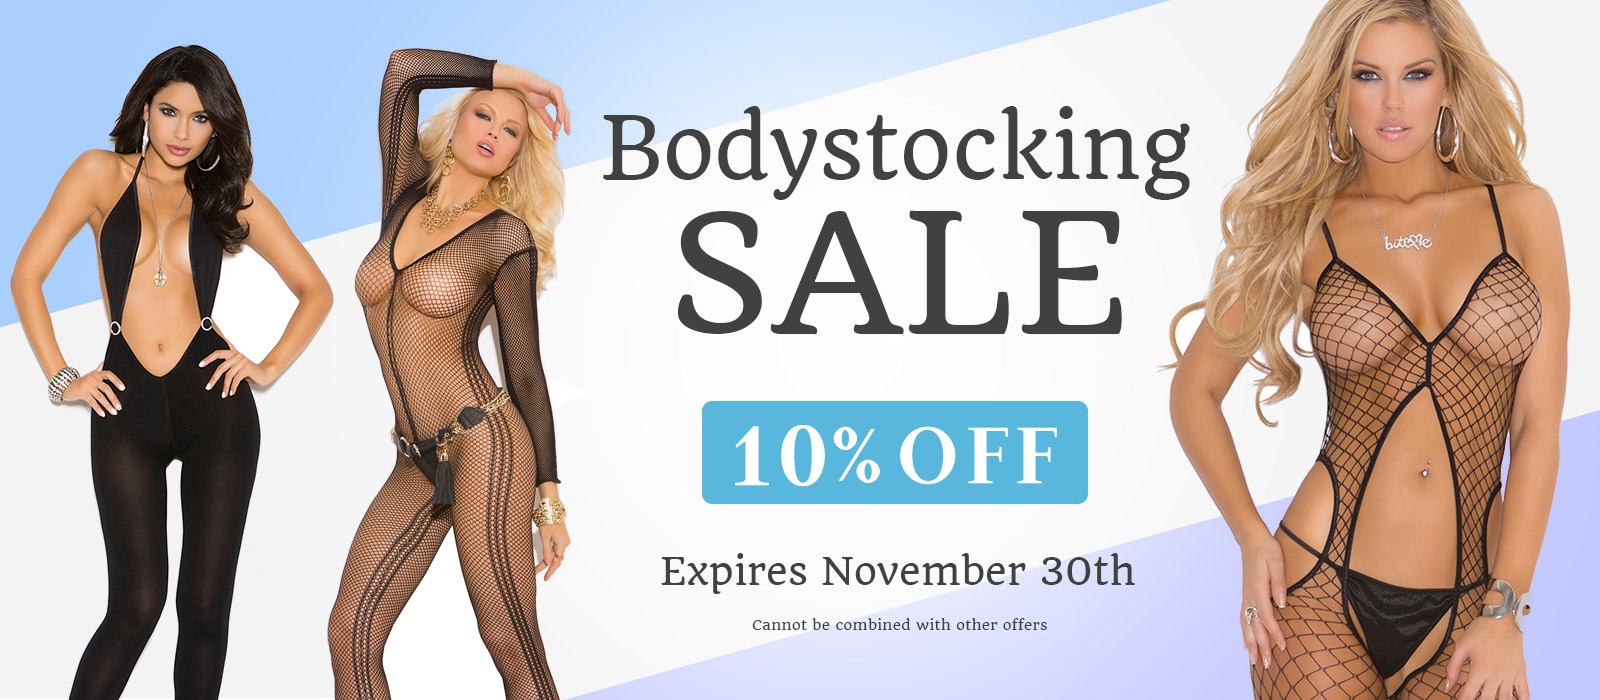 bodystocking sale